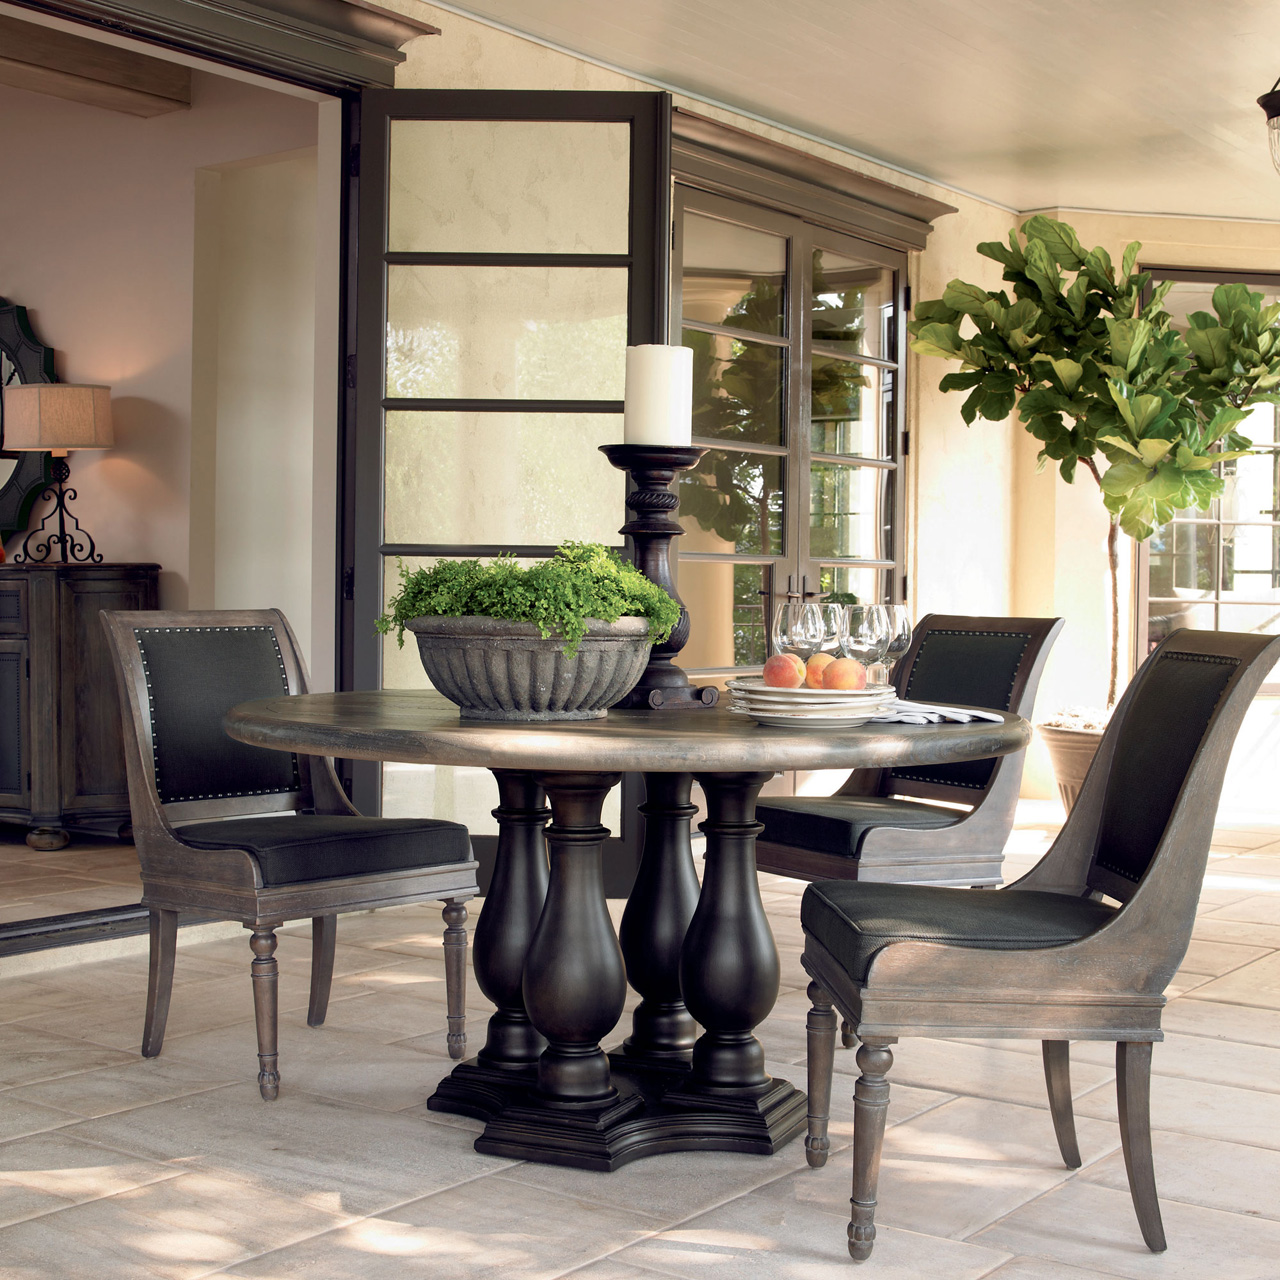 Sofa In Dining Room: Dining Room Furniture